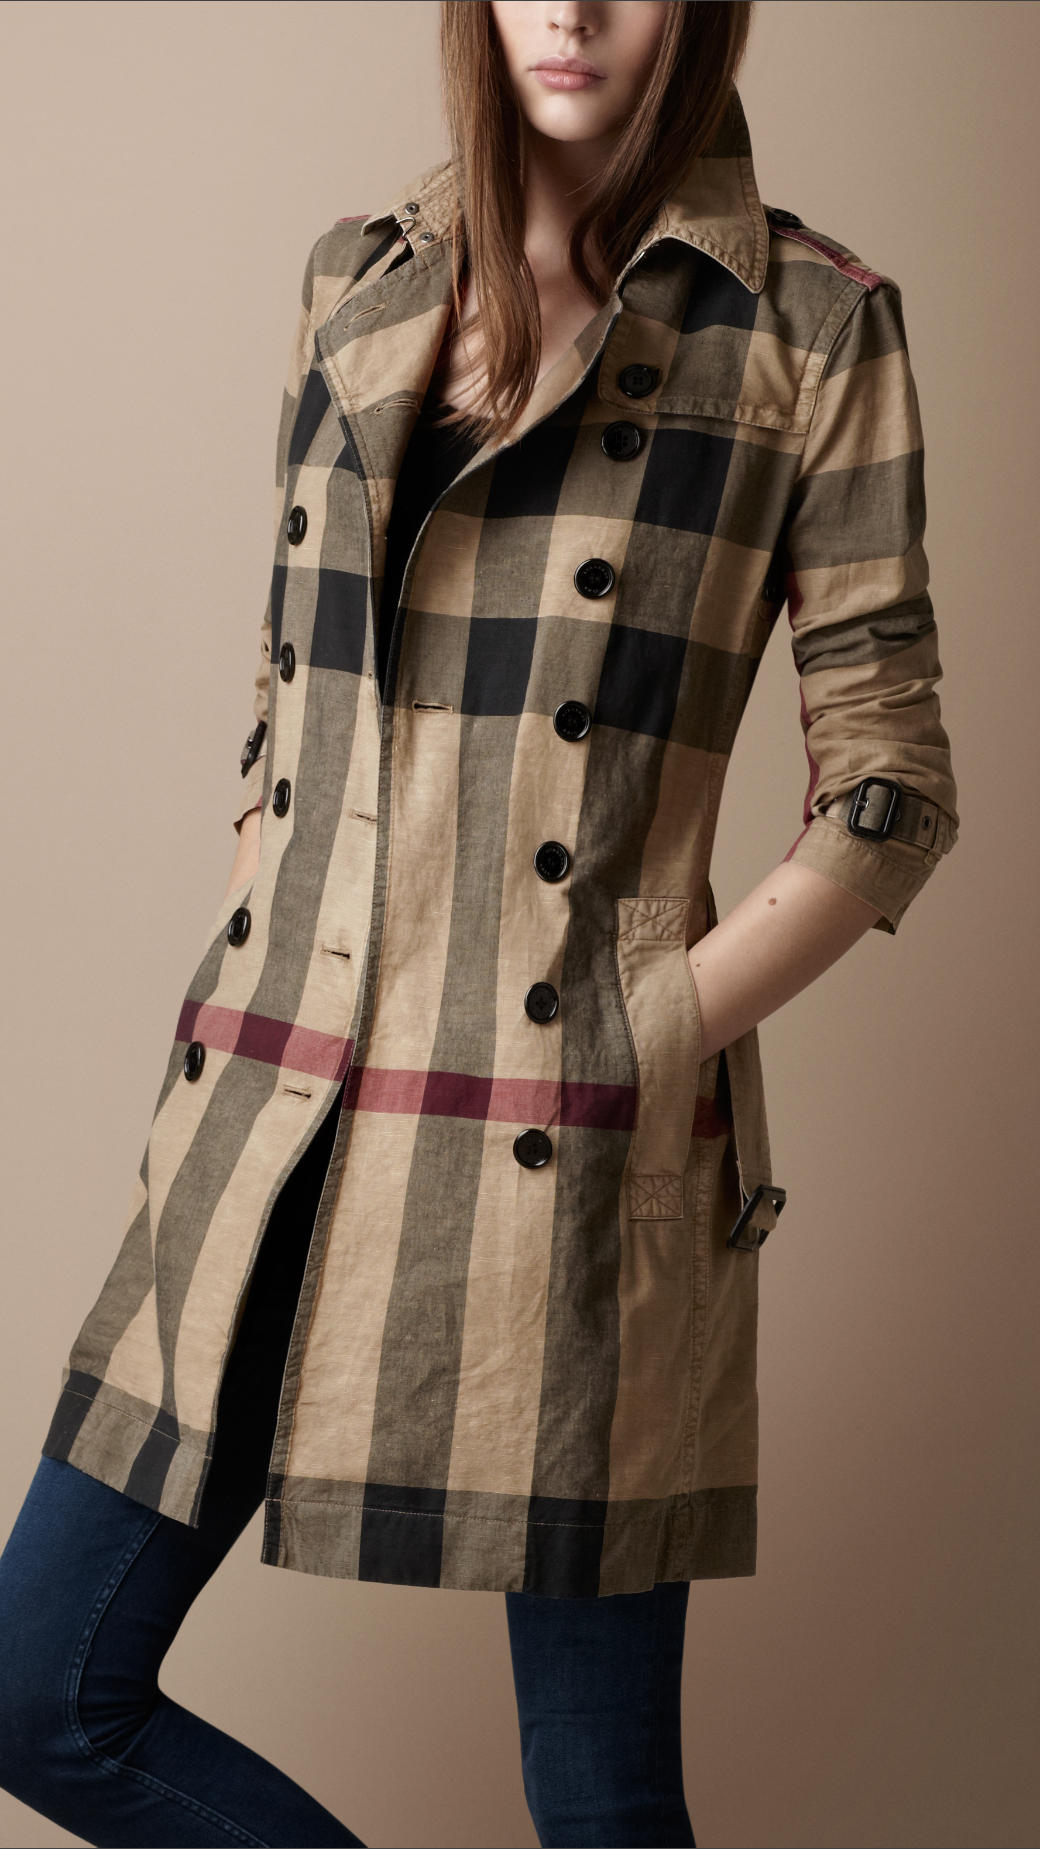 burberry - photo #22